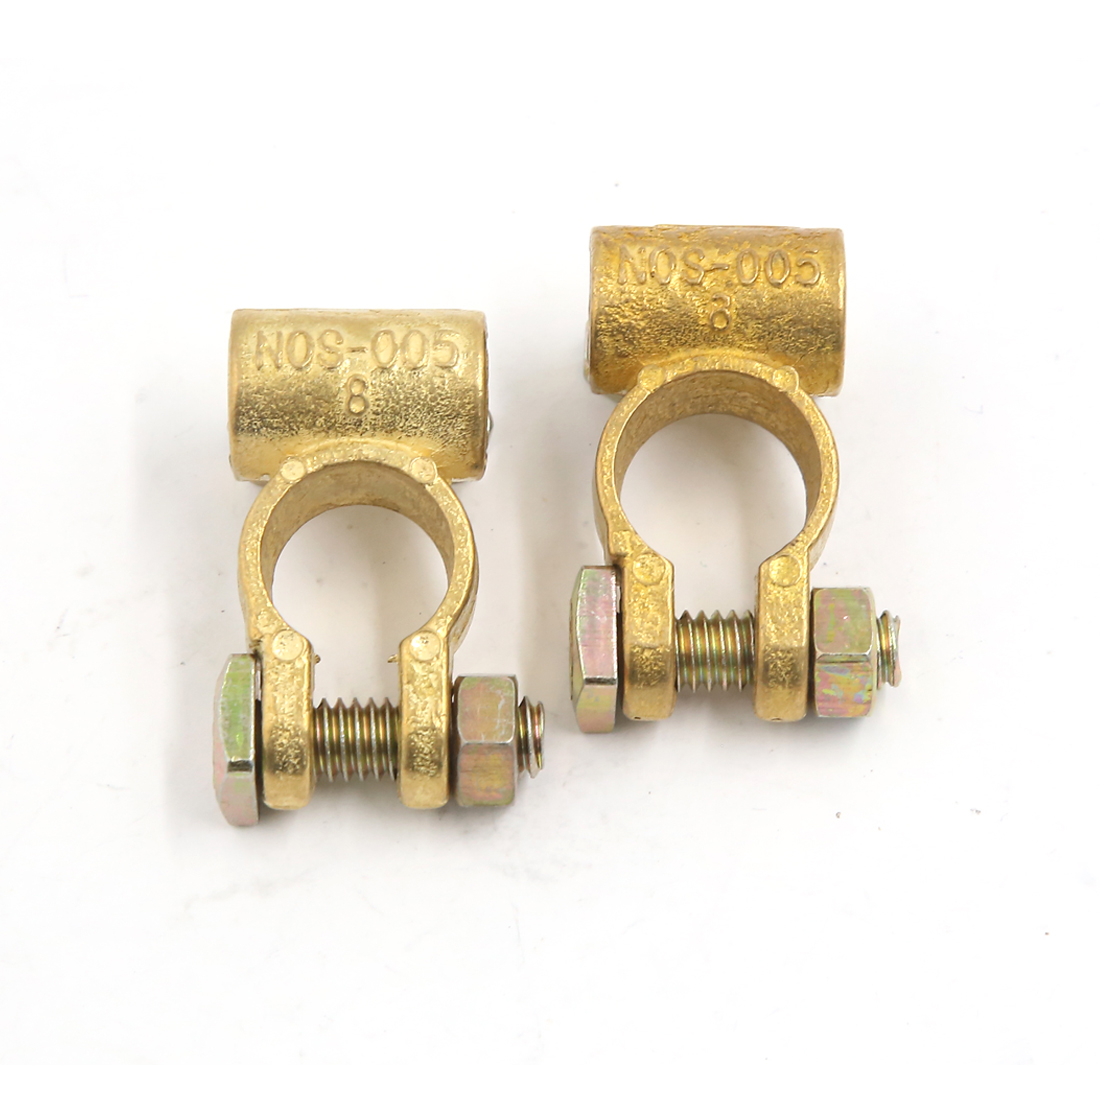 Pair Positive Negative Screw Straight Type Brass Battery Terminal Clips Connector